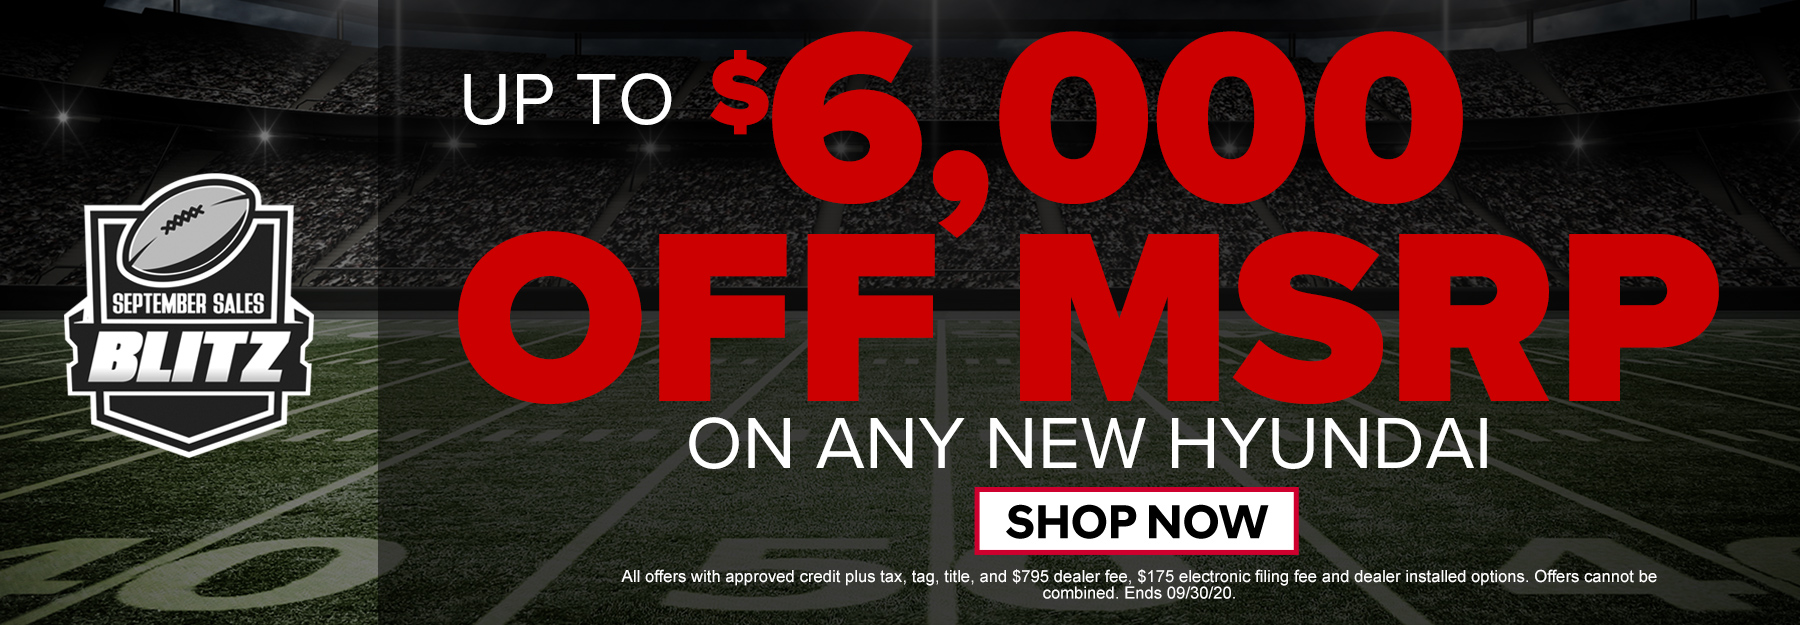 Up To $6000 off MSRP